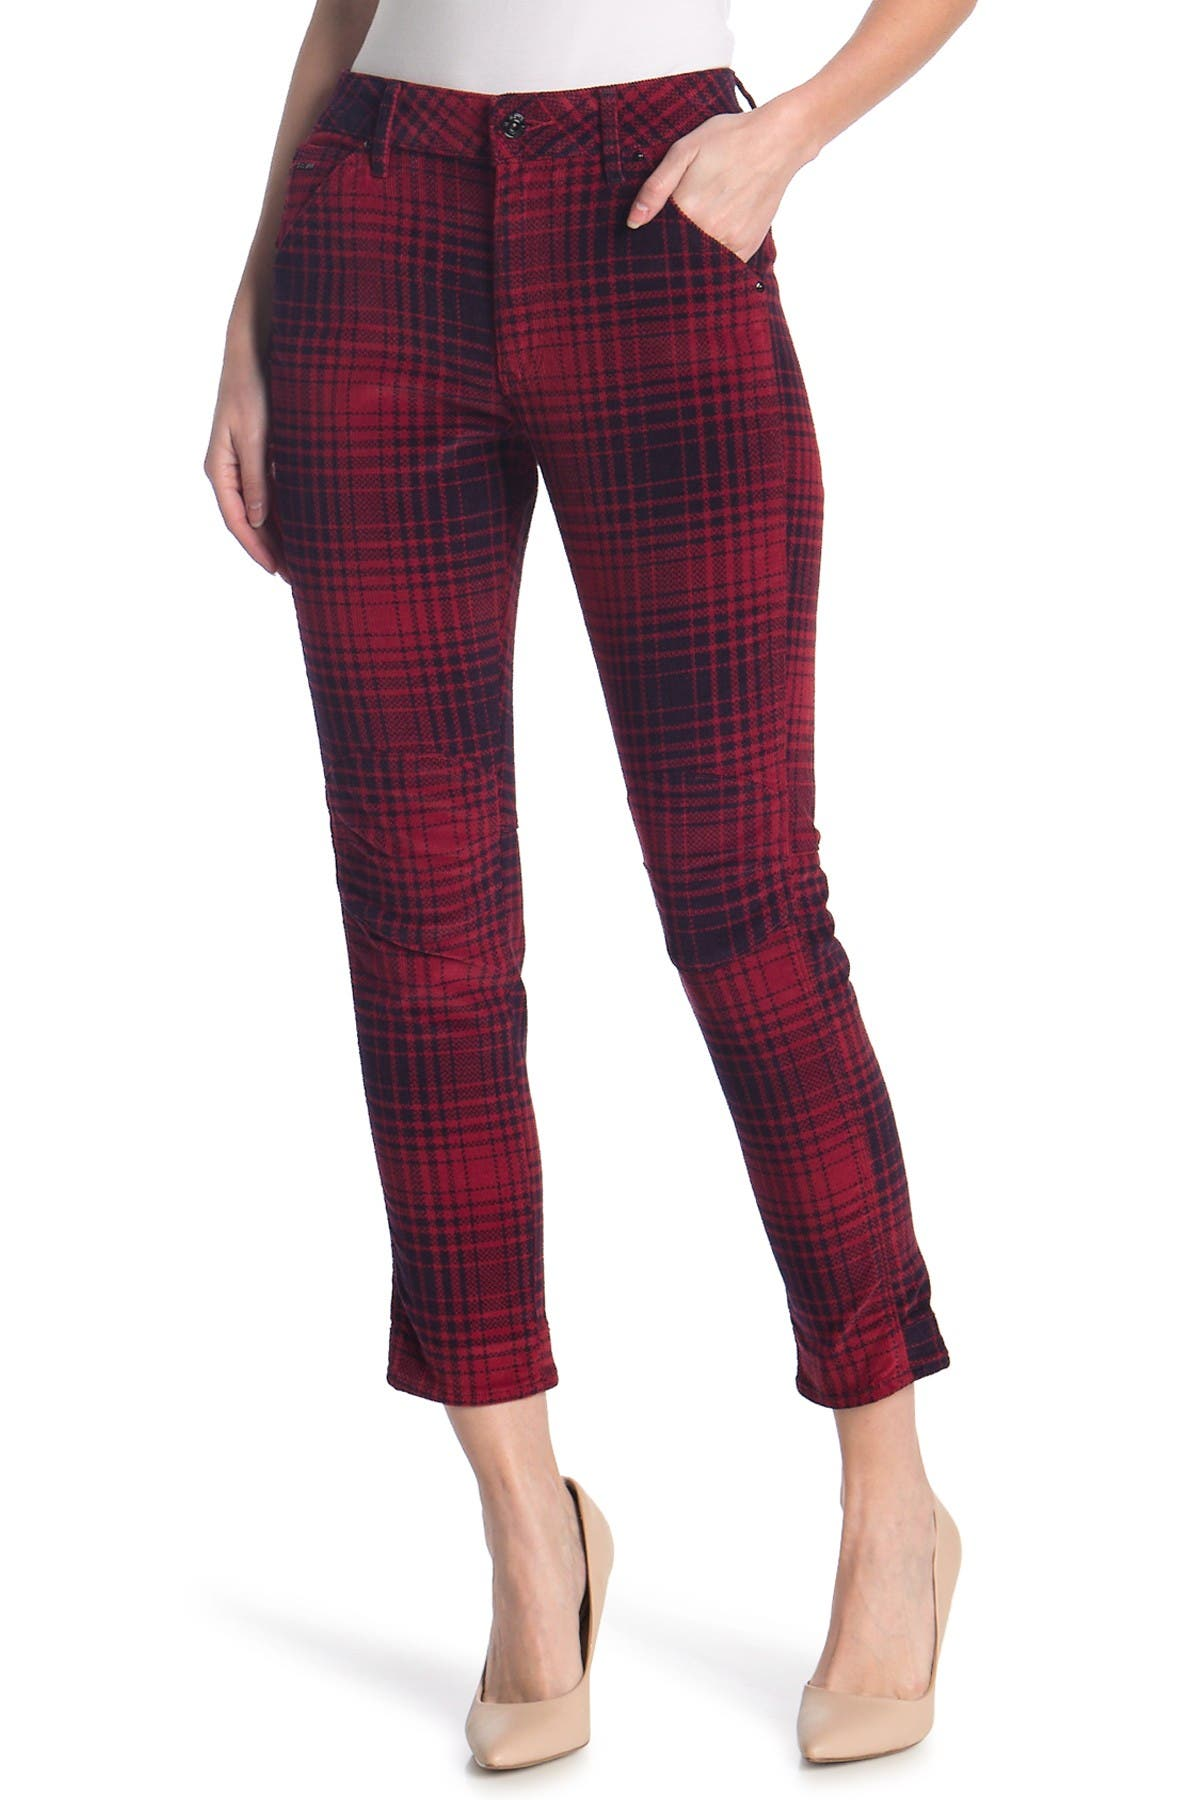 Image of G-STAR RAW 5622 Mid Tapered Boyfriend Pants